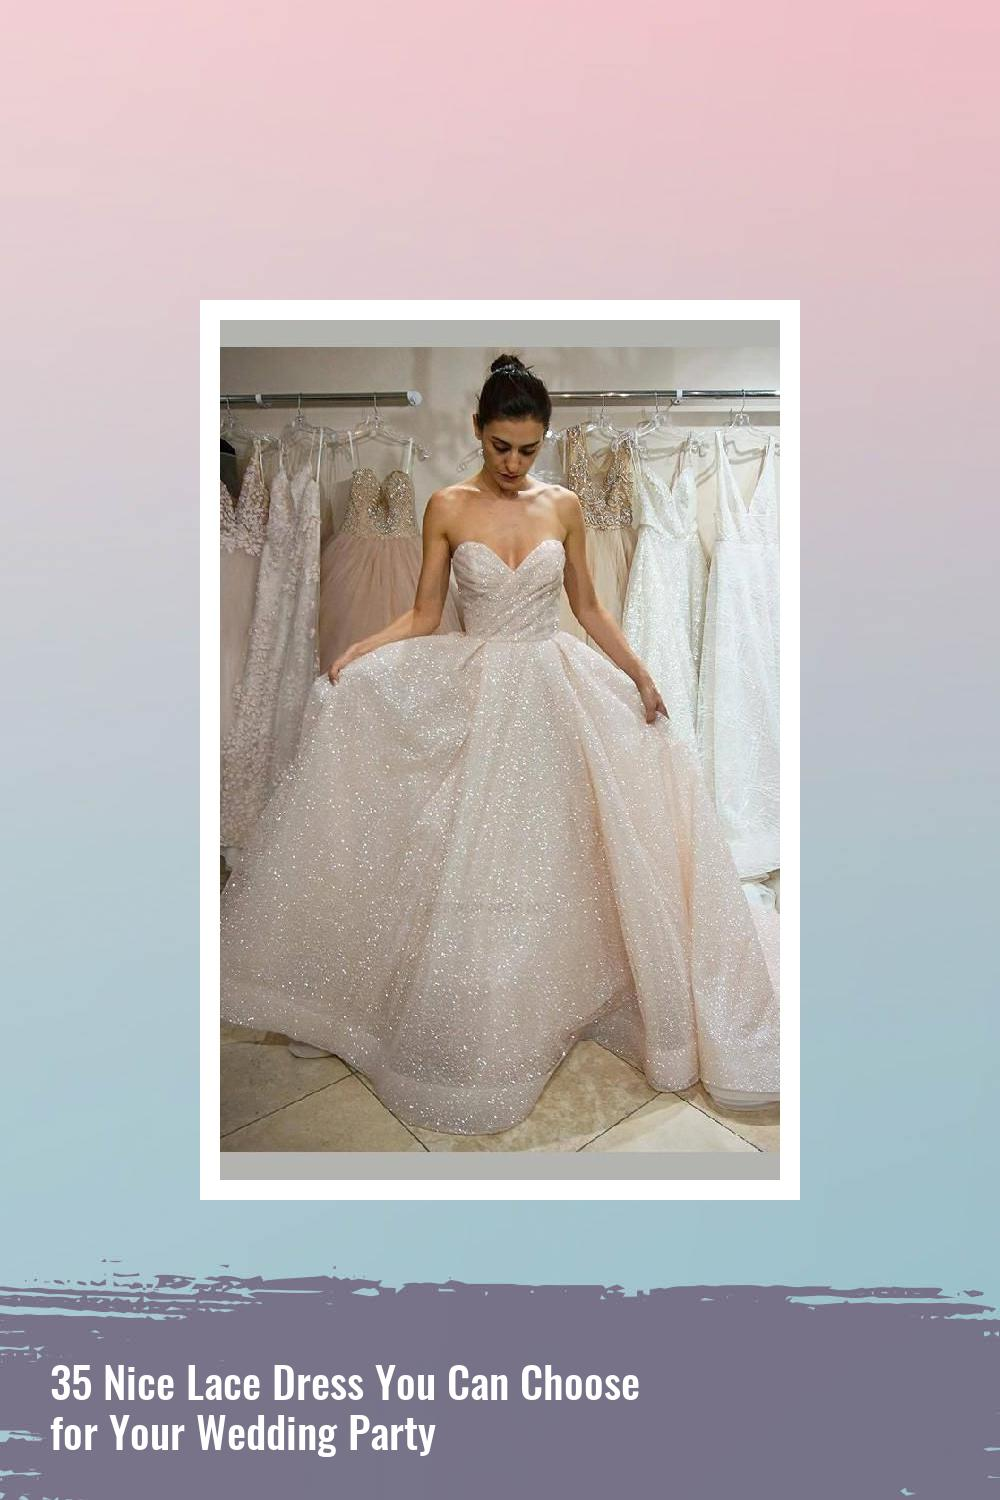 35 Nice Lace Dress You Can Choose for Your Wedding Party 9